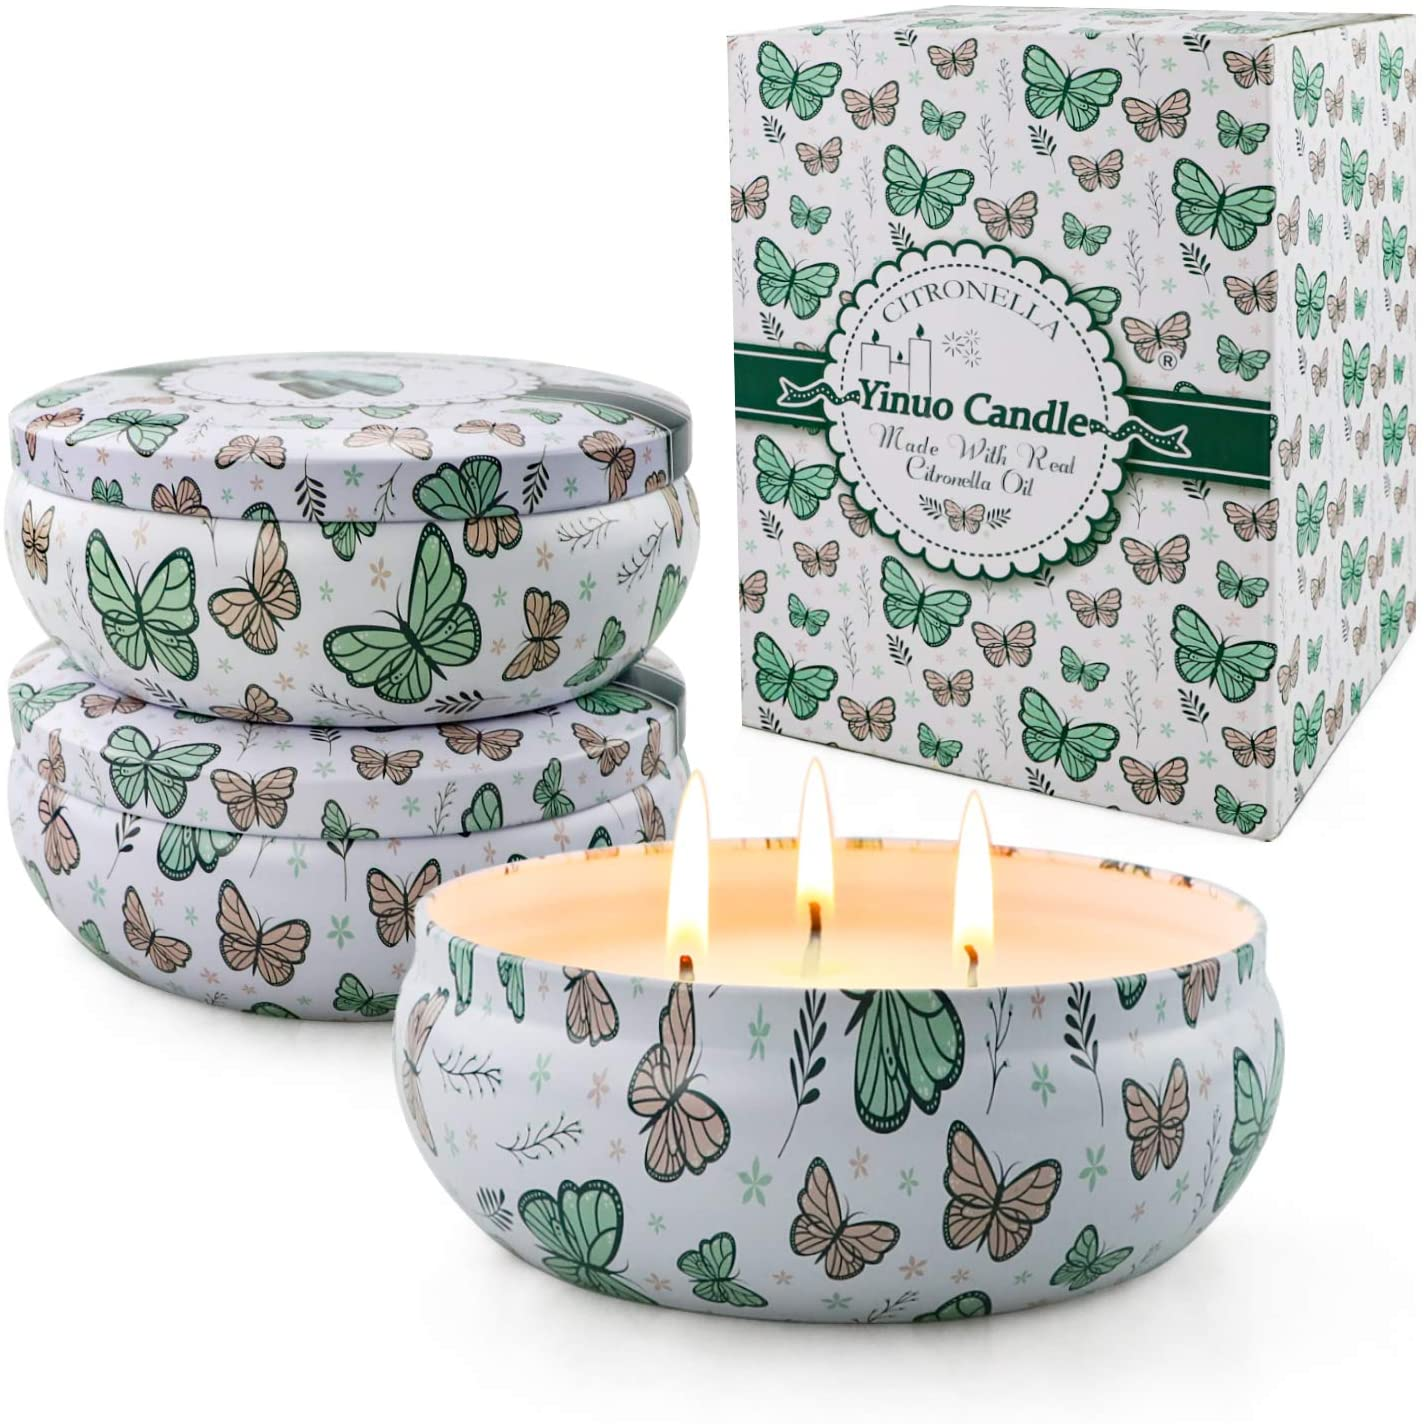 gisly citronella candle and box